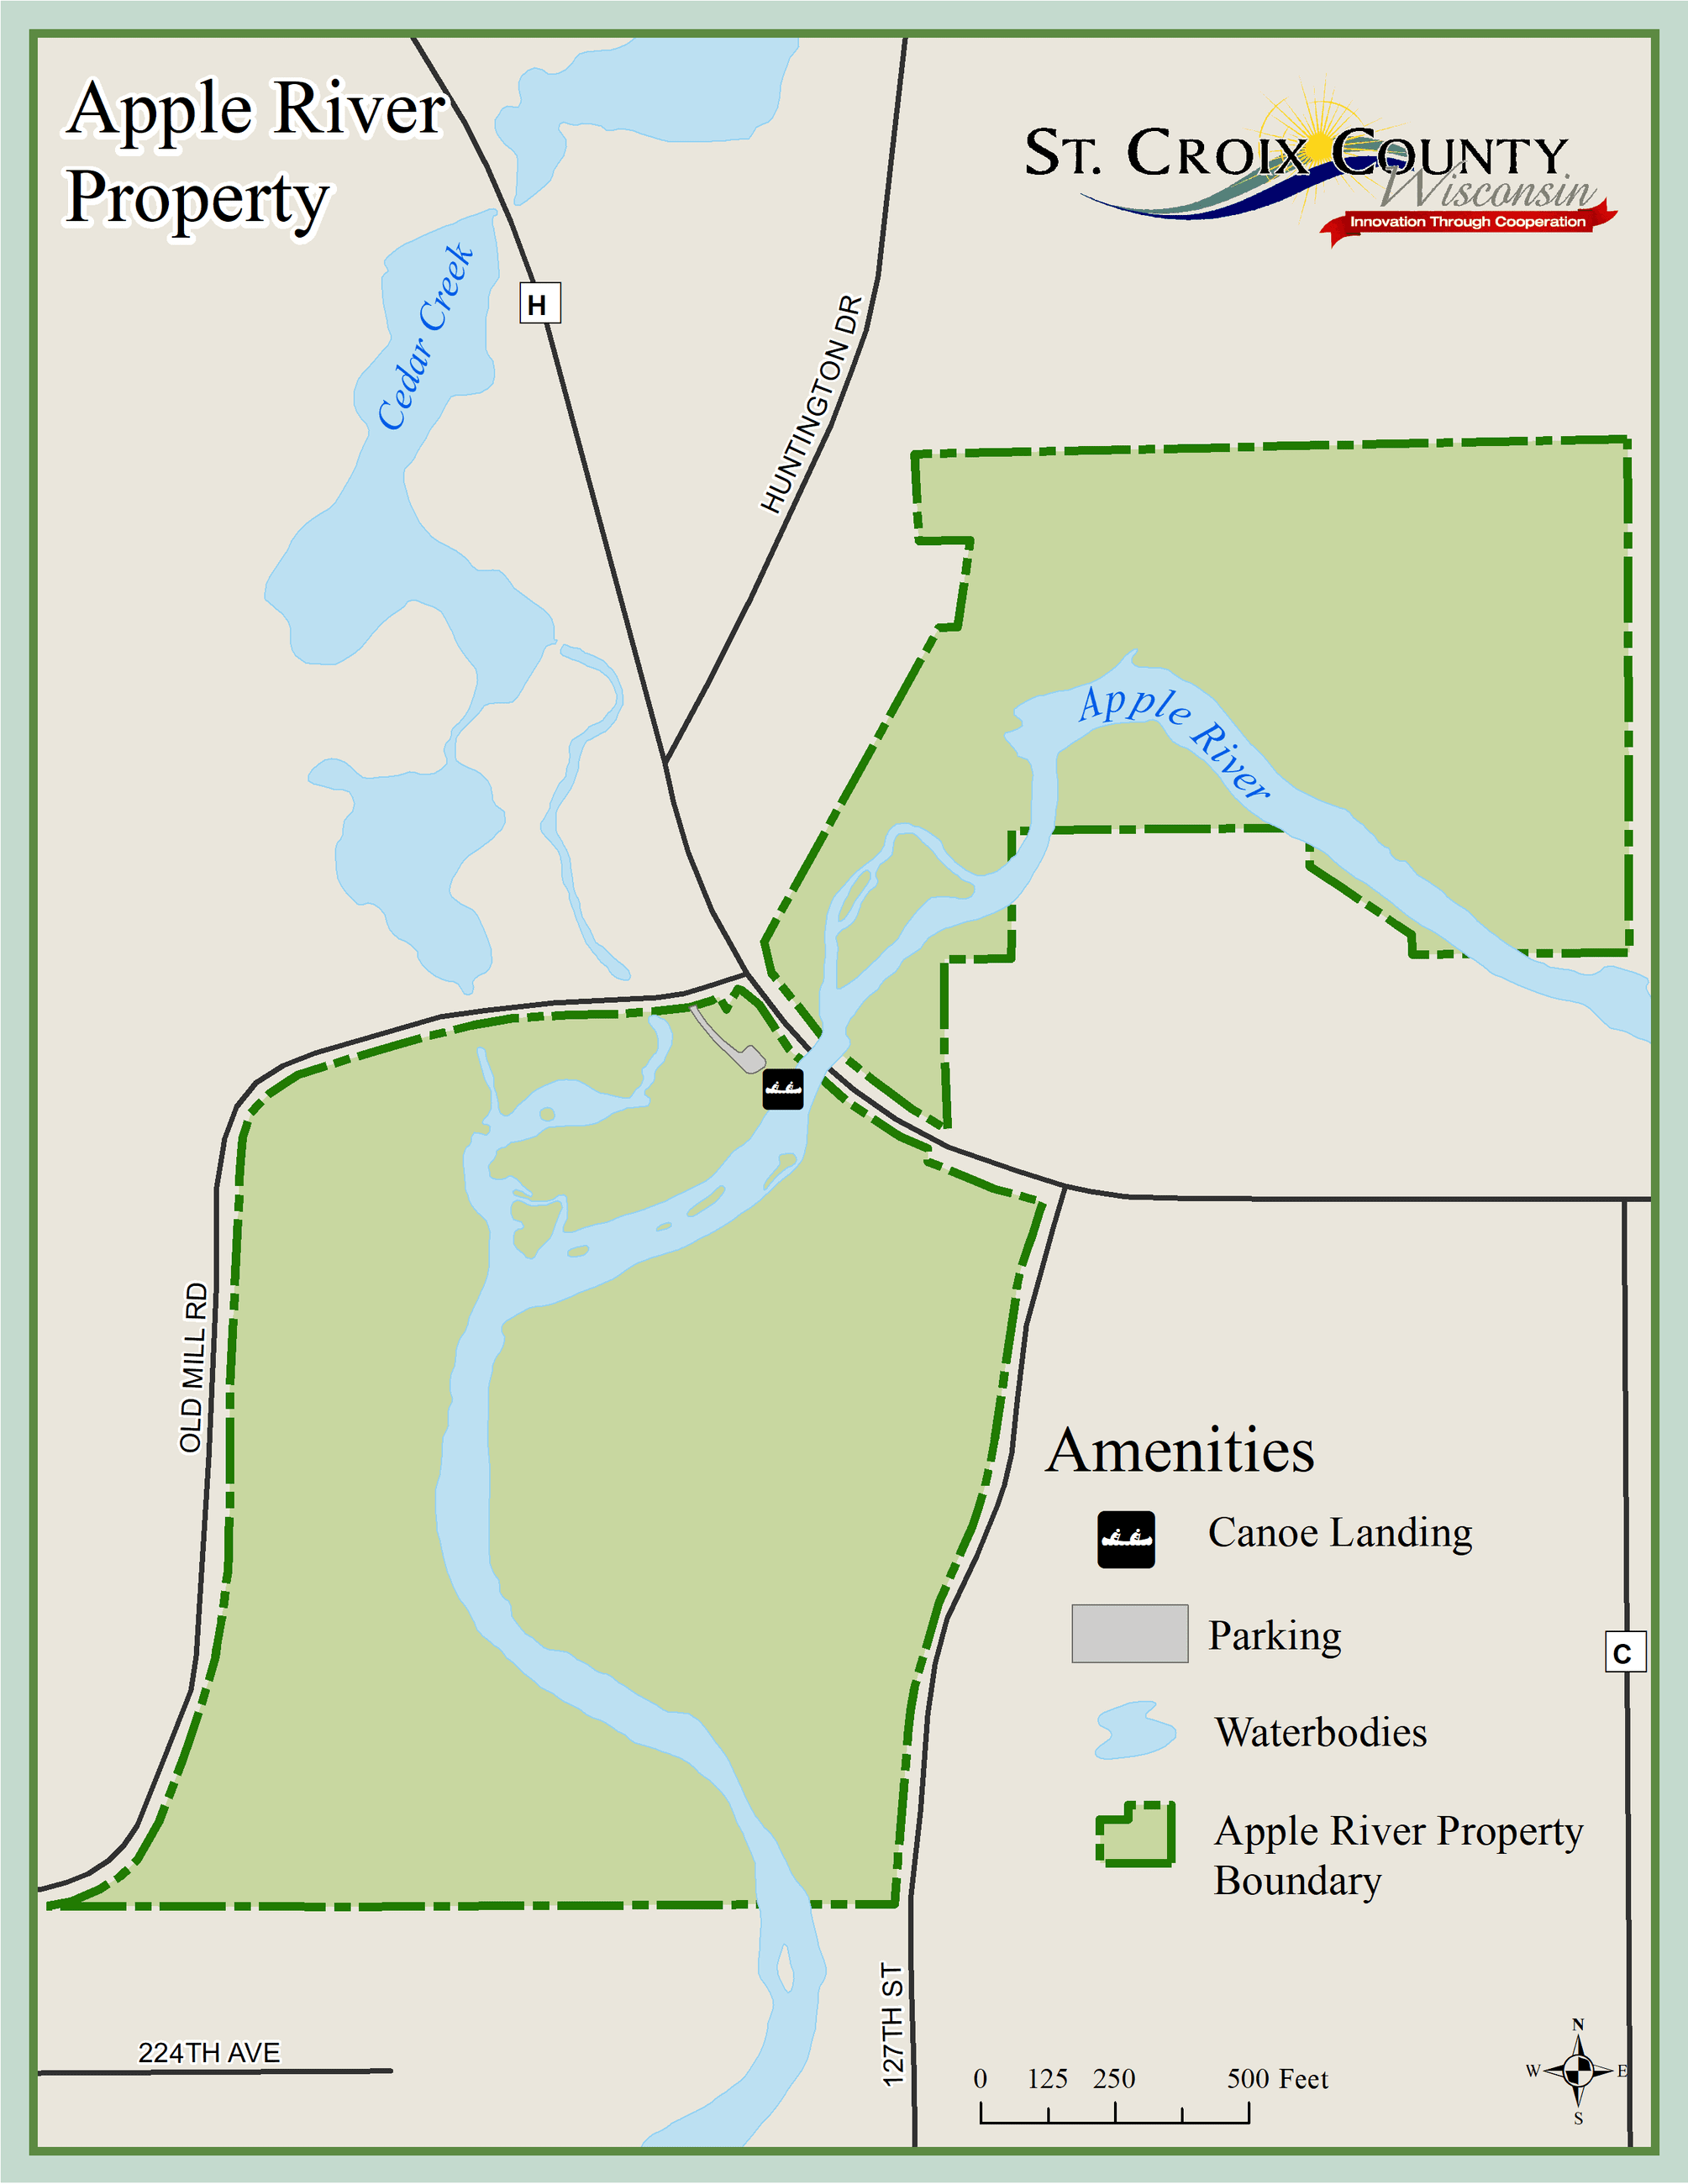 Map of Apple River property showing roads, creeks, and Apple River.